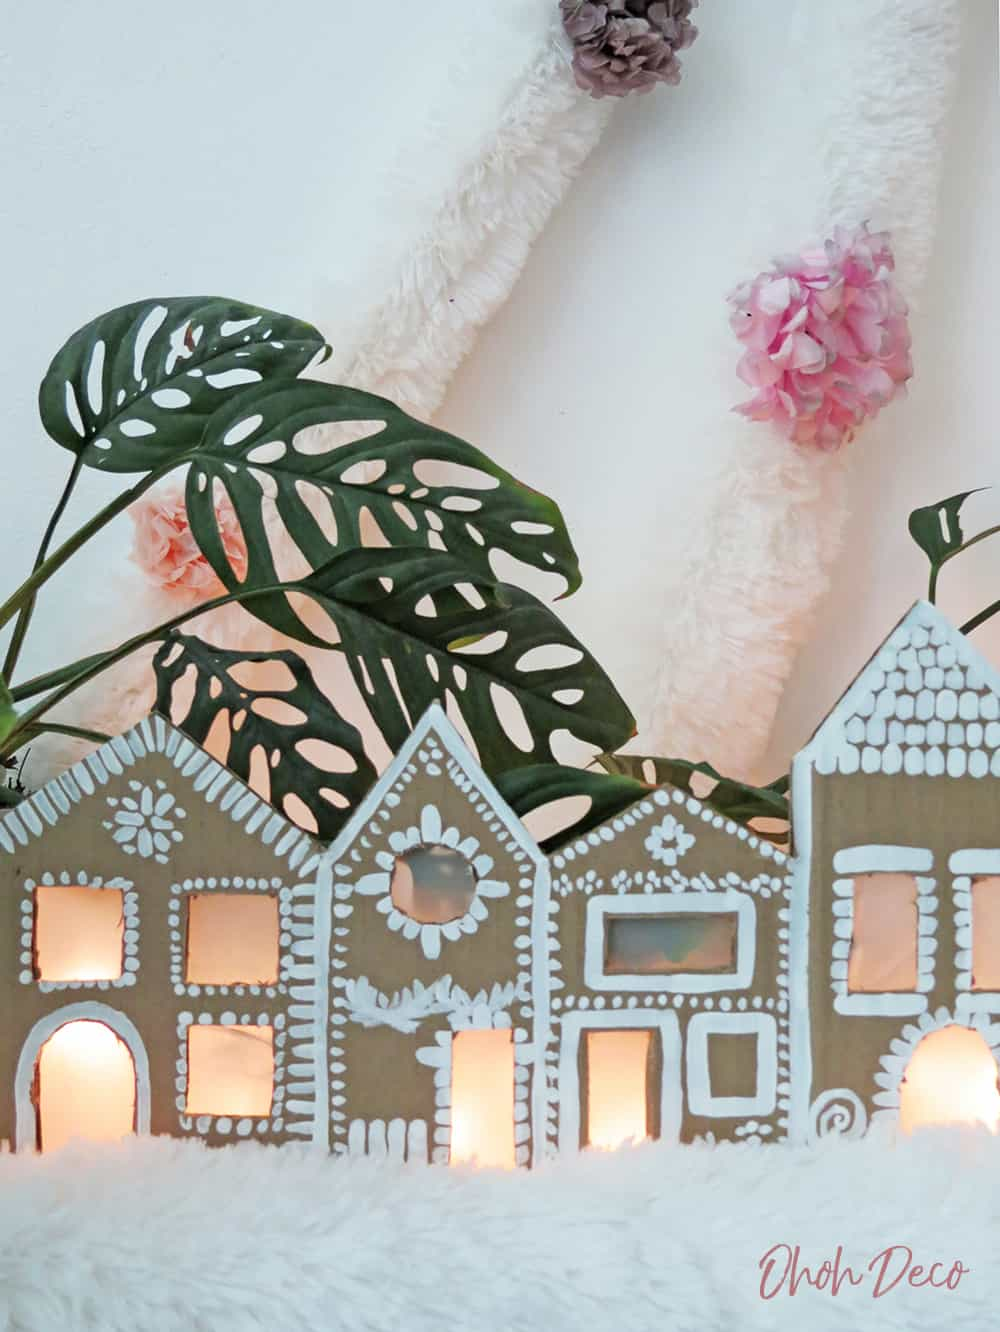 How to make a ginger house decor with recycled cardboard